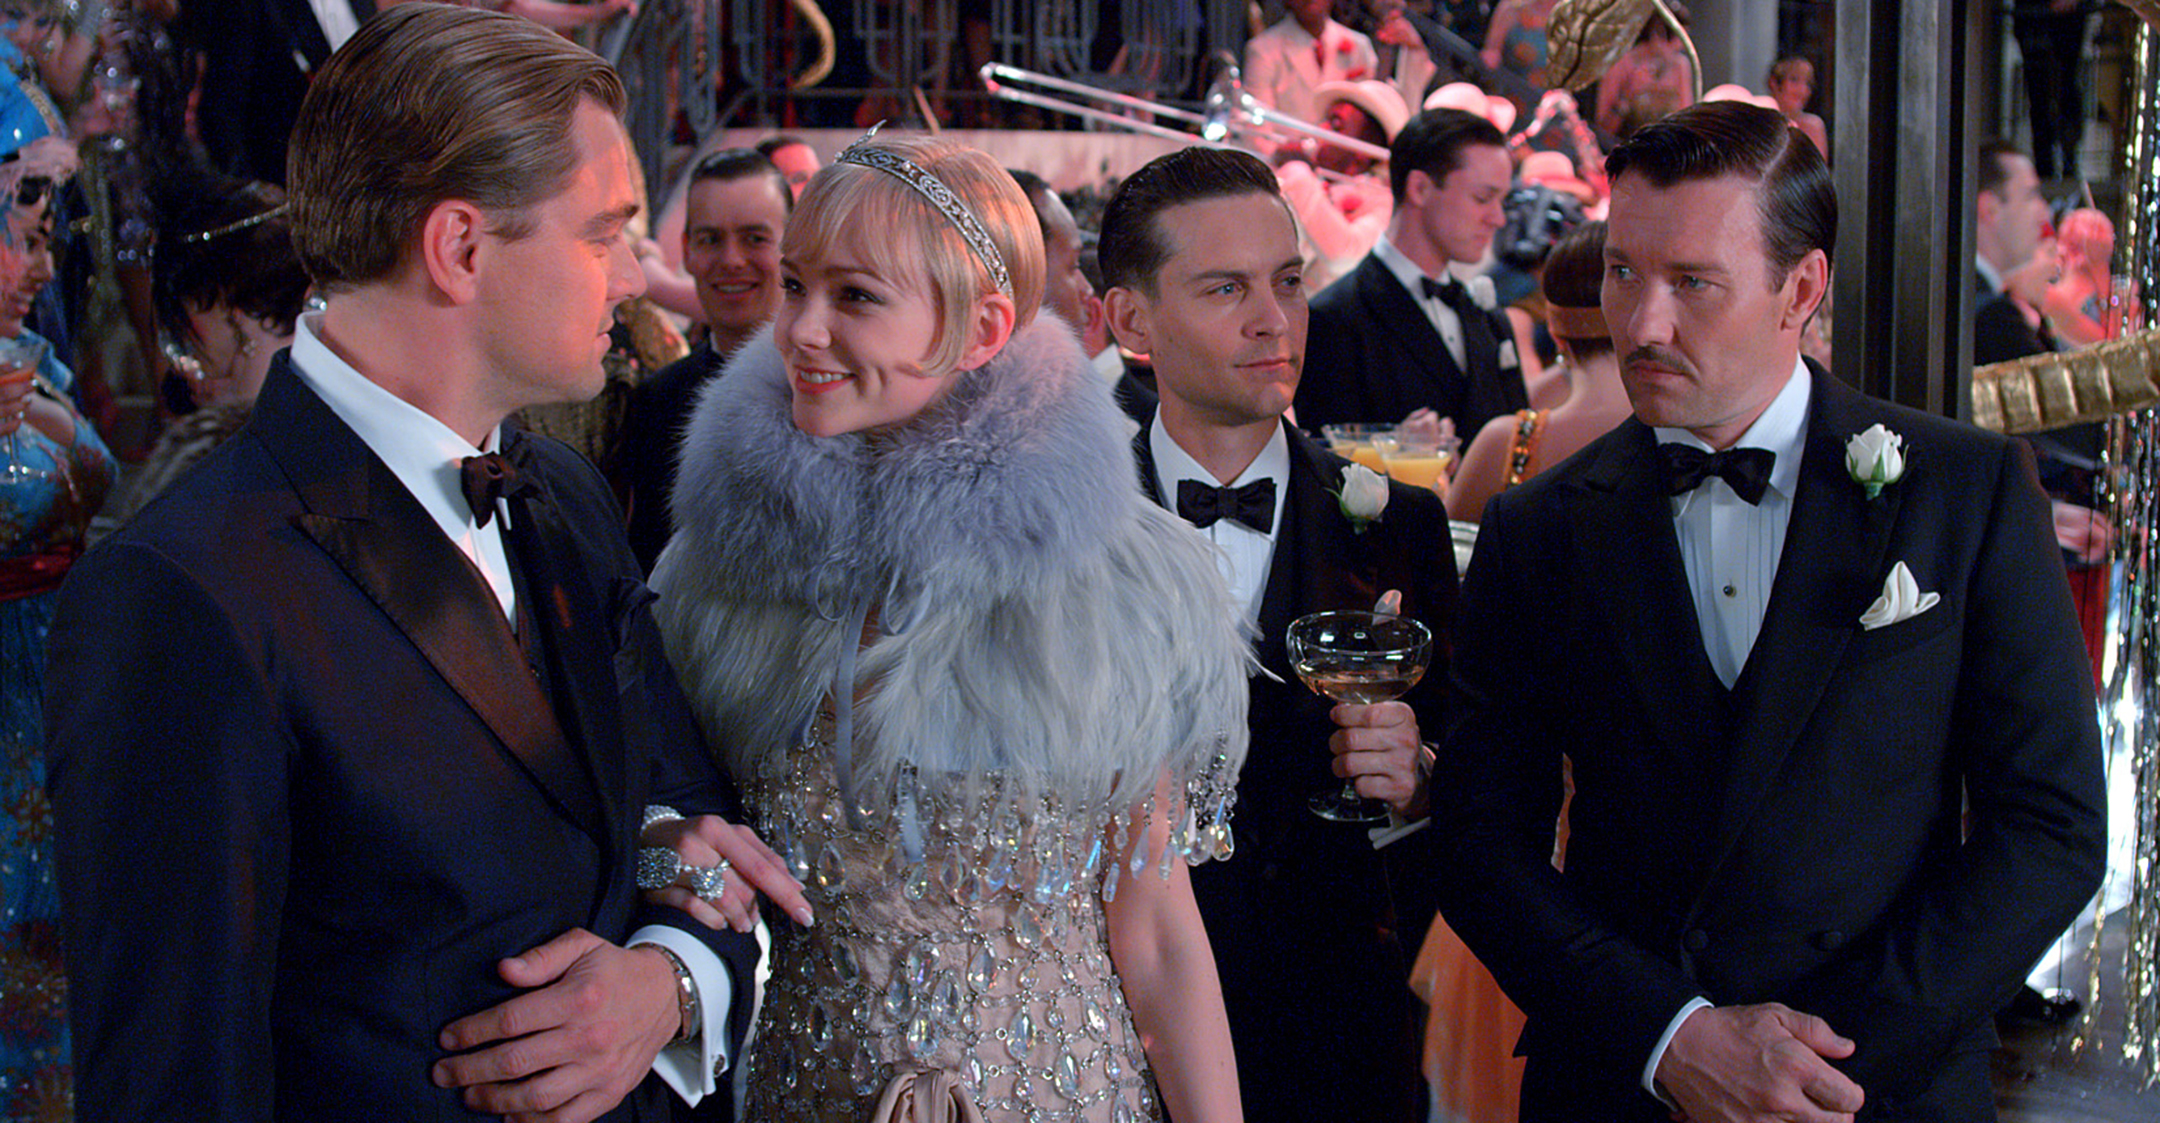 A party scene from the film The Great Gatsby